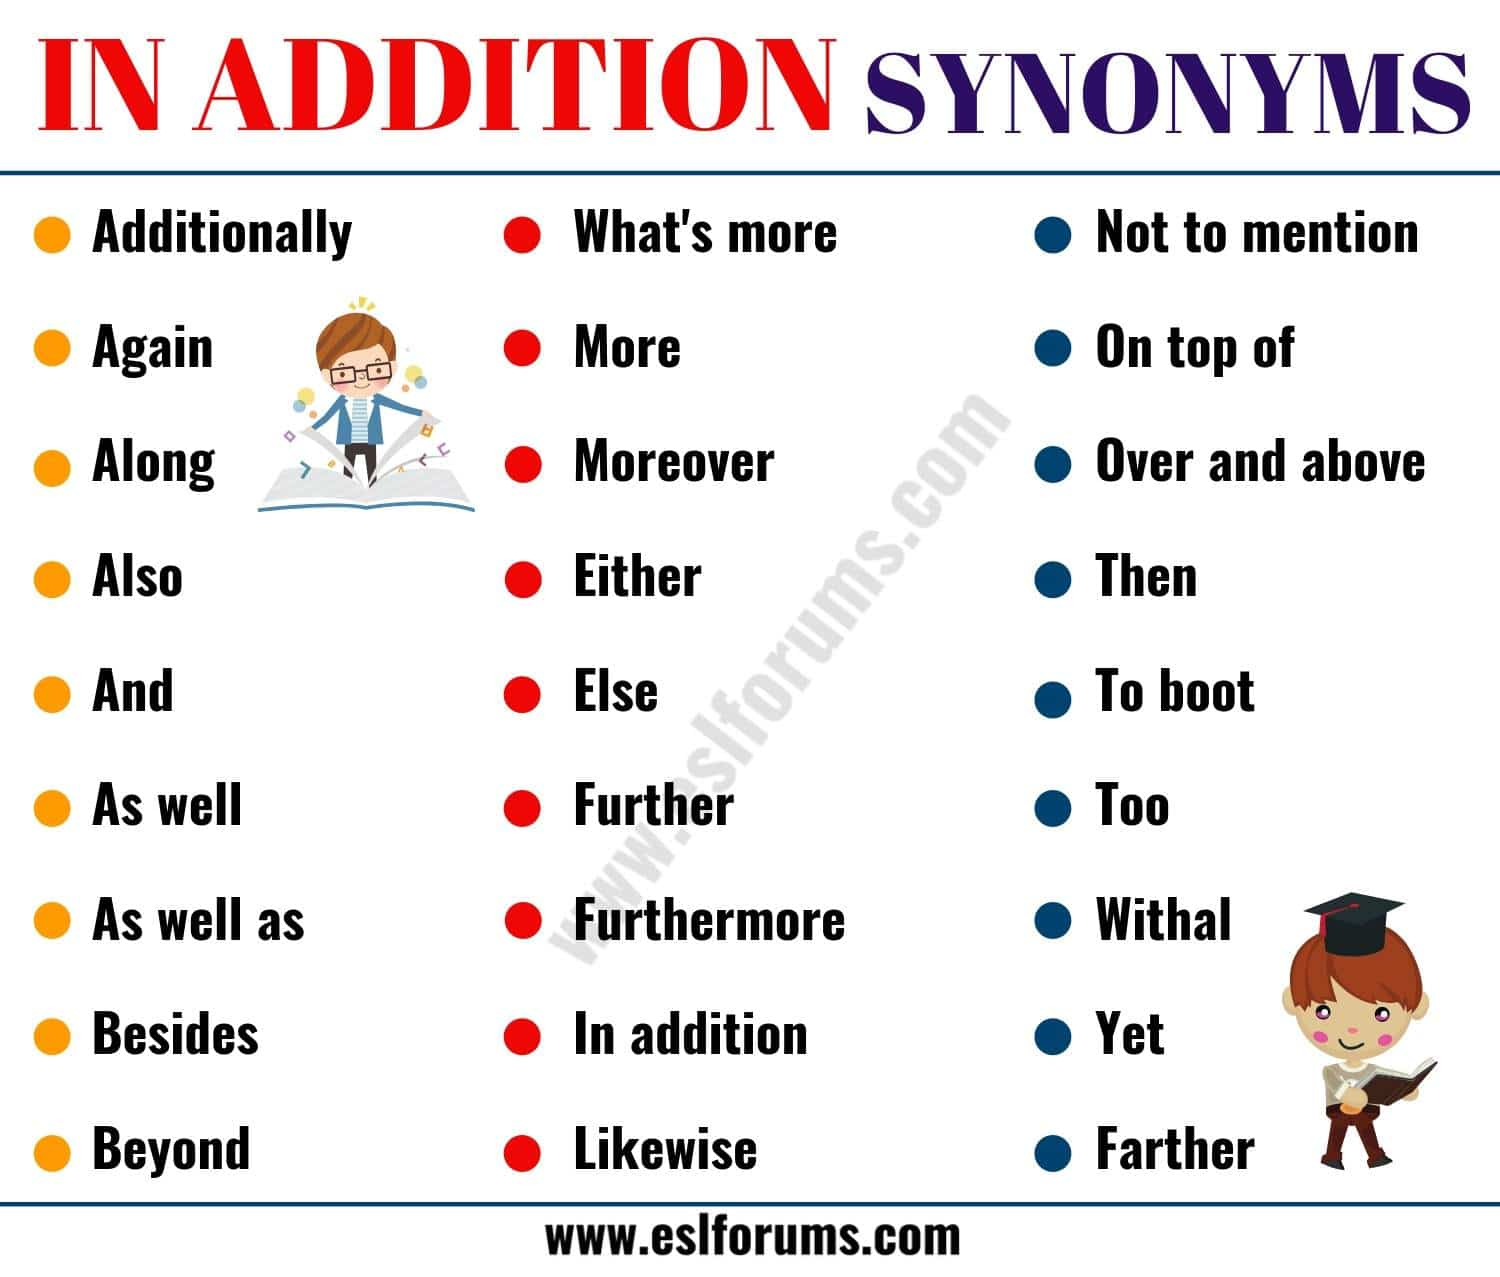 Other Ways to Say IN ADDITION: 28 Useful Synonyms for IN ADDITION